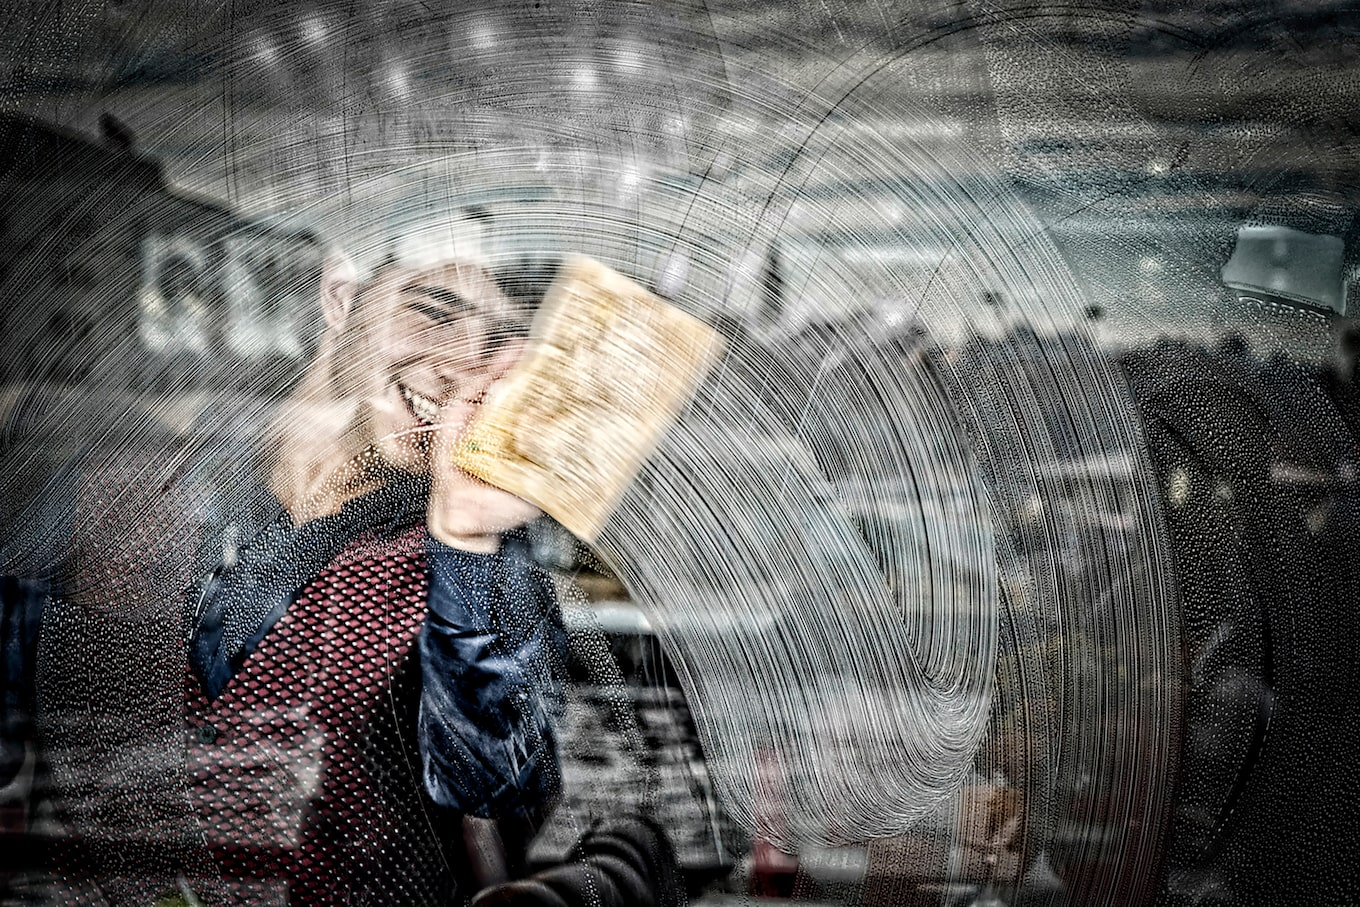 murat-pulat-sony-alpha-7II-smiling-young-man-cleans-window-from-inside